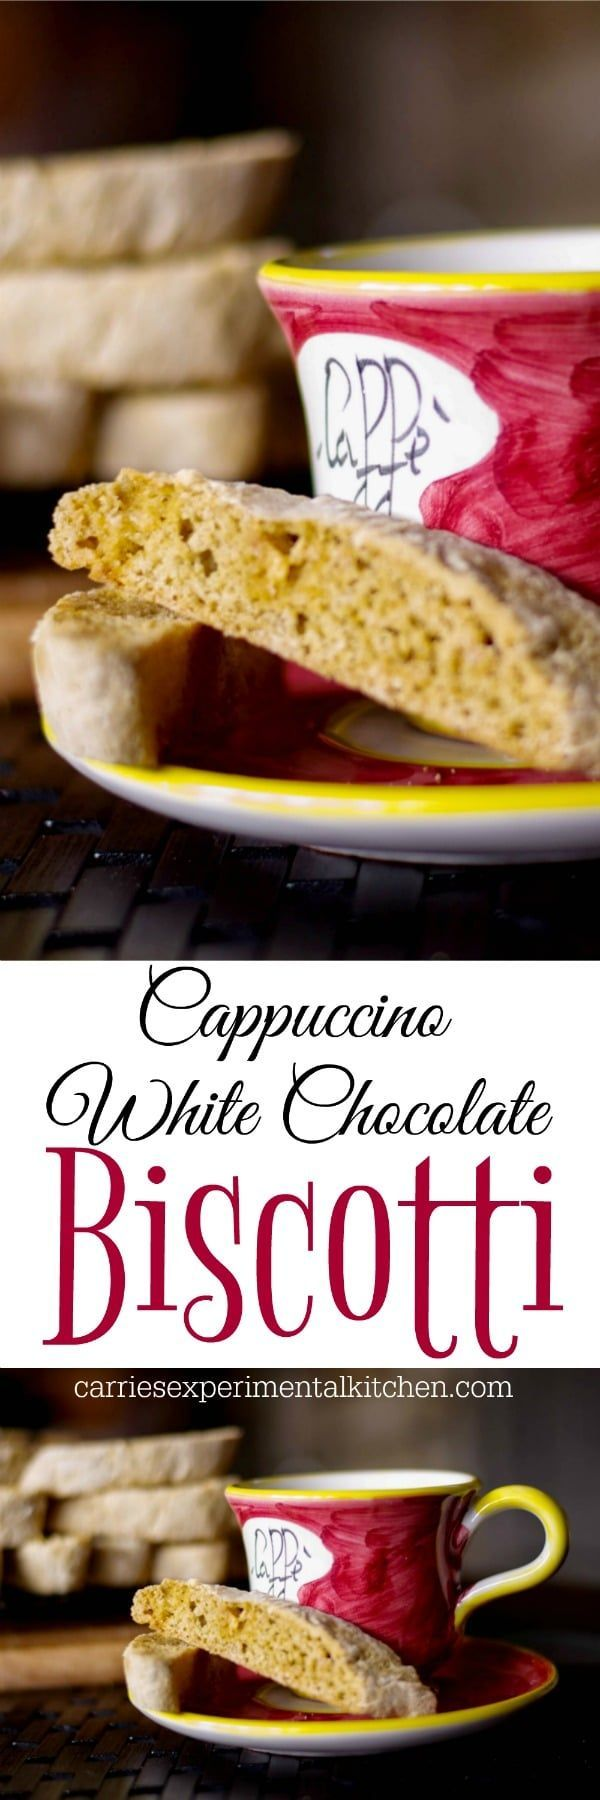 Cappuccino White Chocolate Biscotti combines the favorite Italian, crunchy cookie and cappuccino all in one. Perfect for snacking or holiday gift giving. via @CarriesExpKtchn #cookies #biscotti #baking #holidays